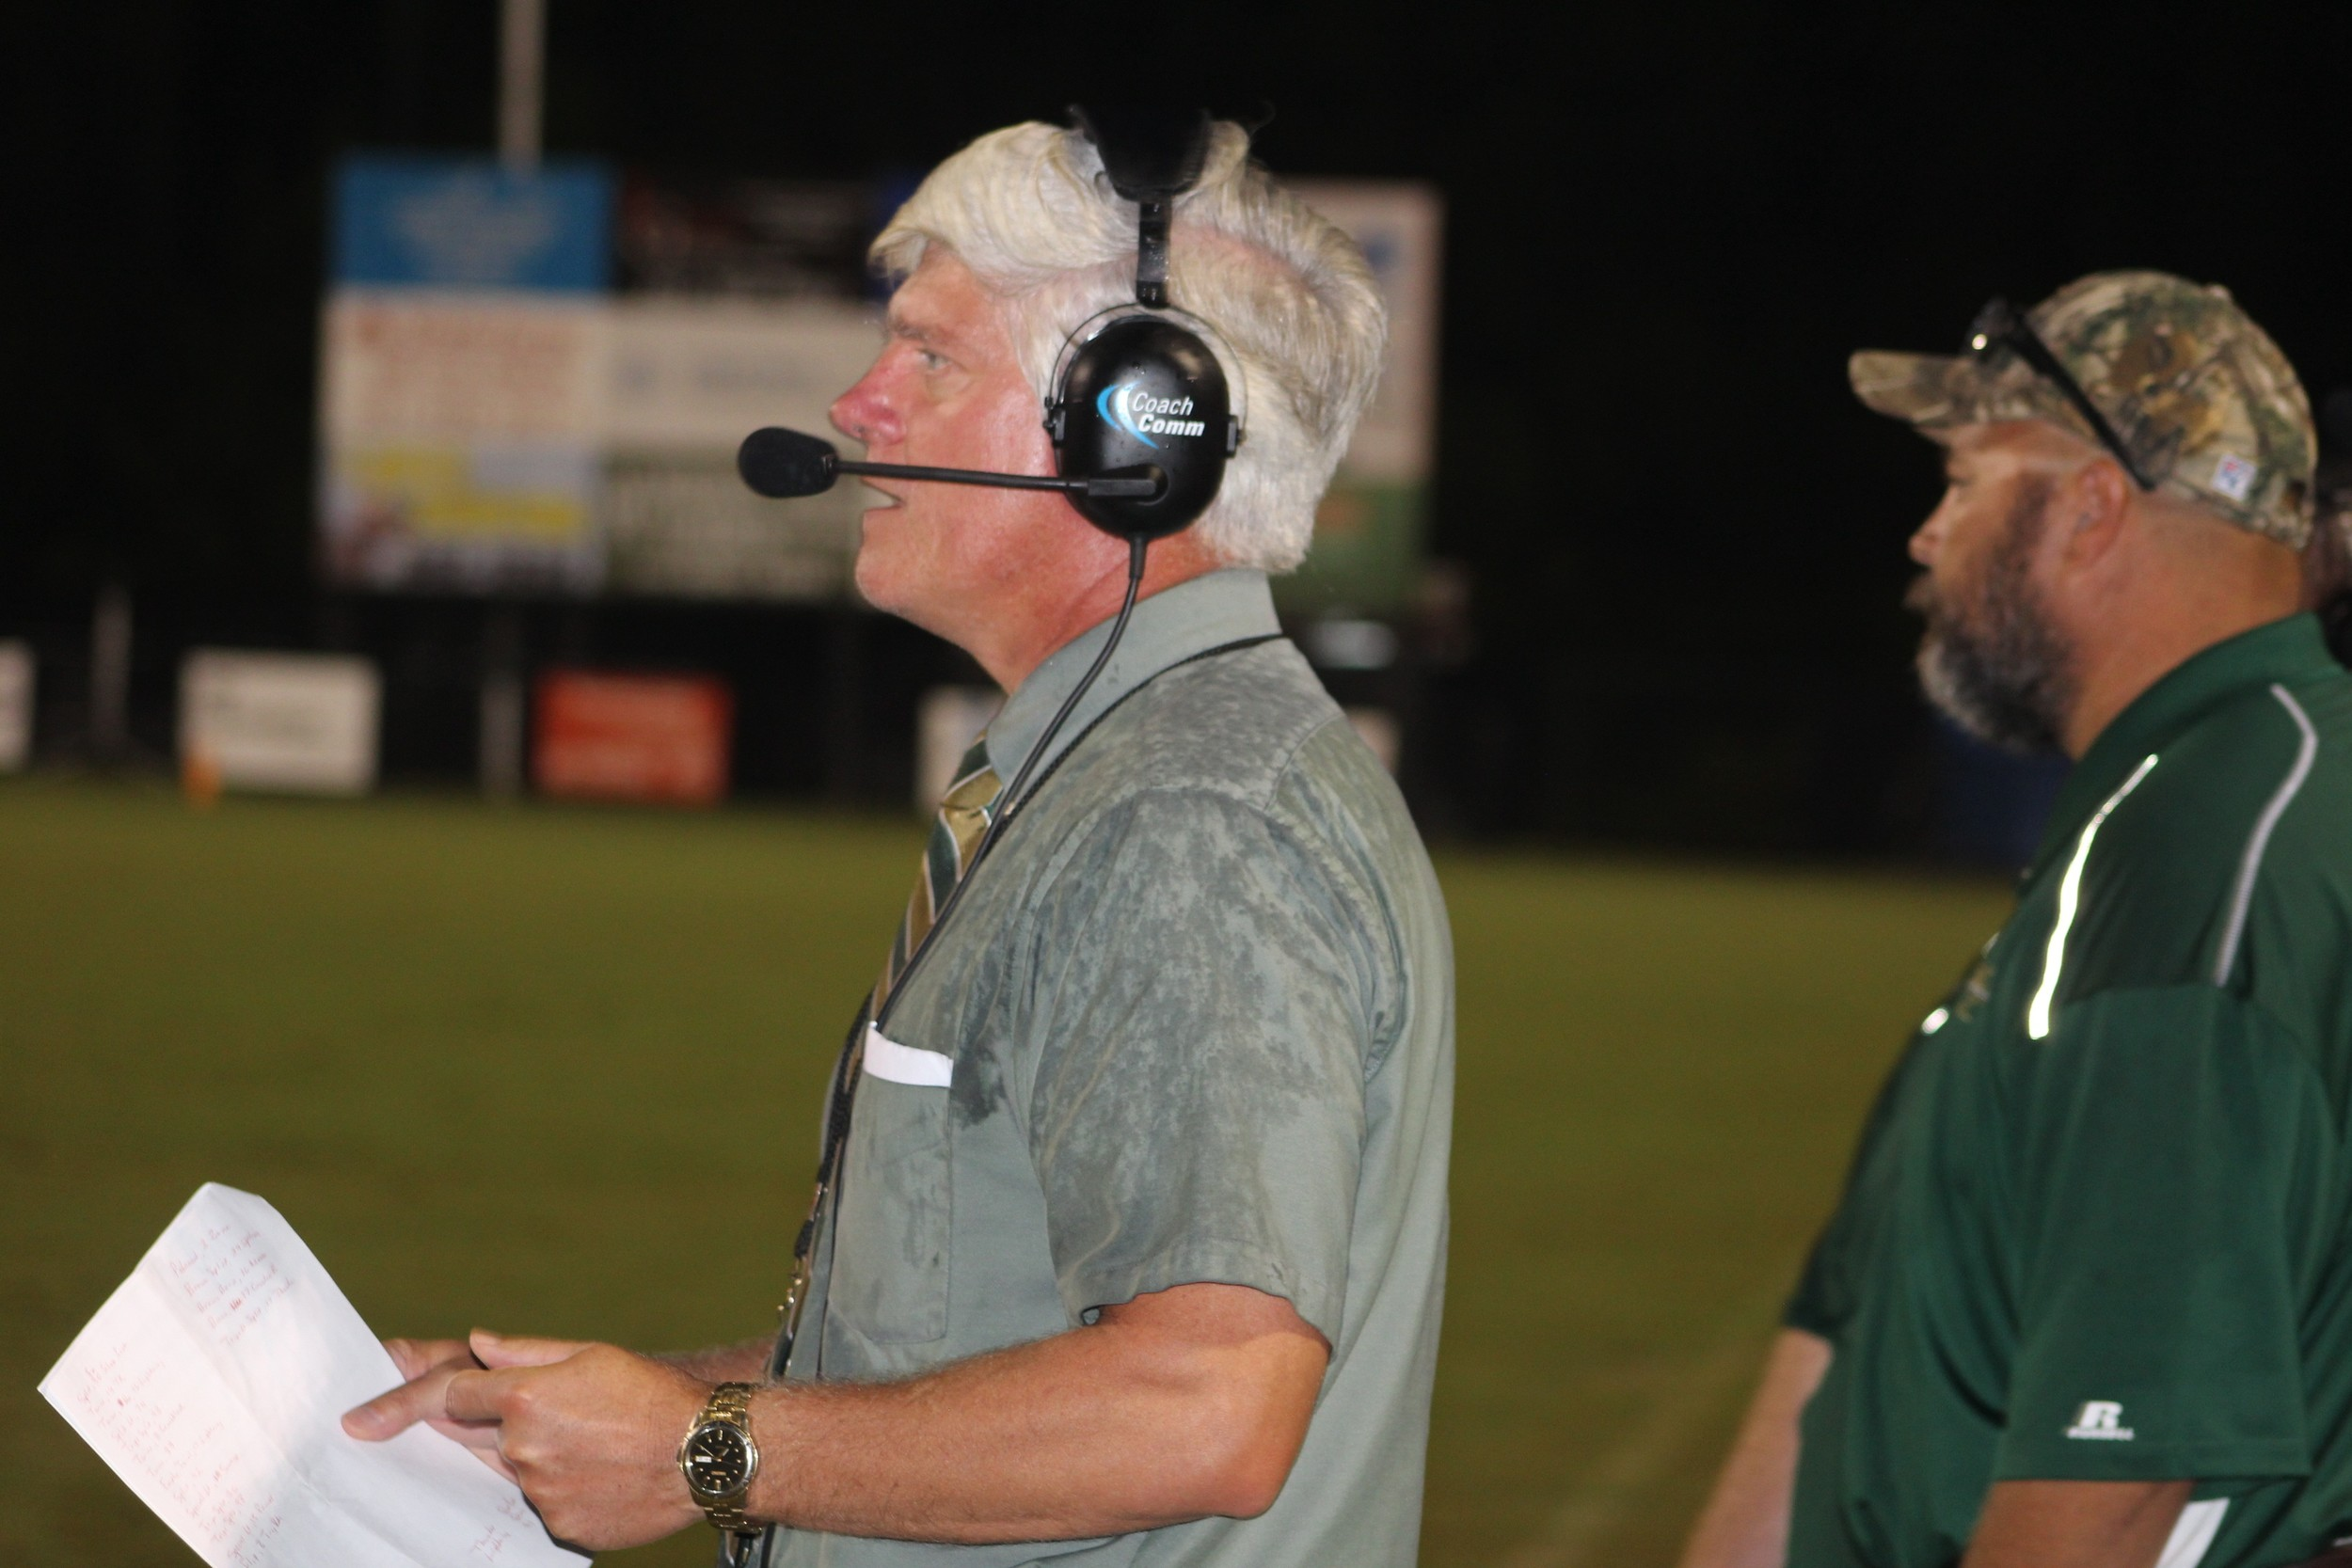 Coach Keith Smith leads the Snook Christian Academy Eagles into Homecoming Friday night. Though they did not gain victory over the South Walton Seahawks, the Eagles are remain at 3-2 heading into a break in their first-ever varsity season.